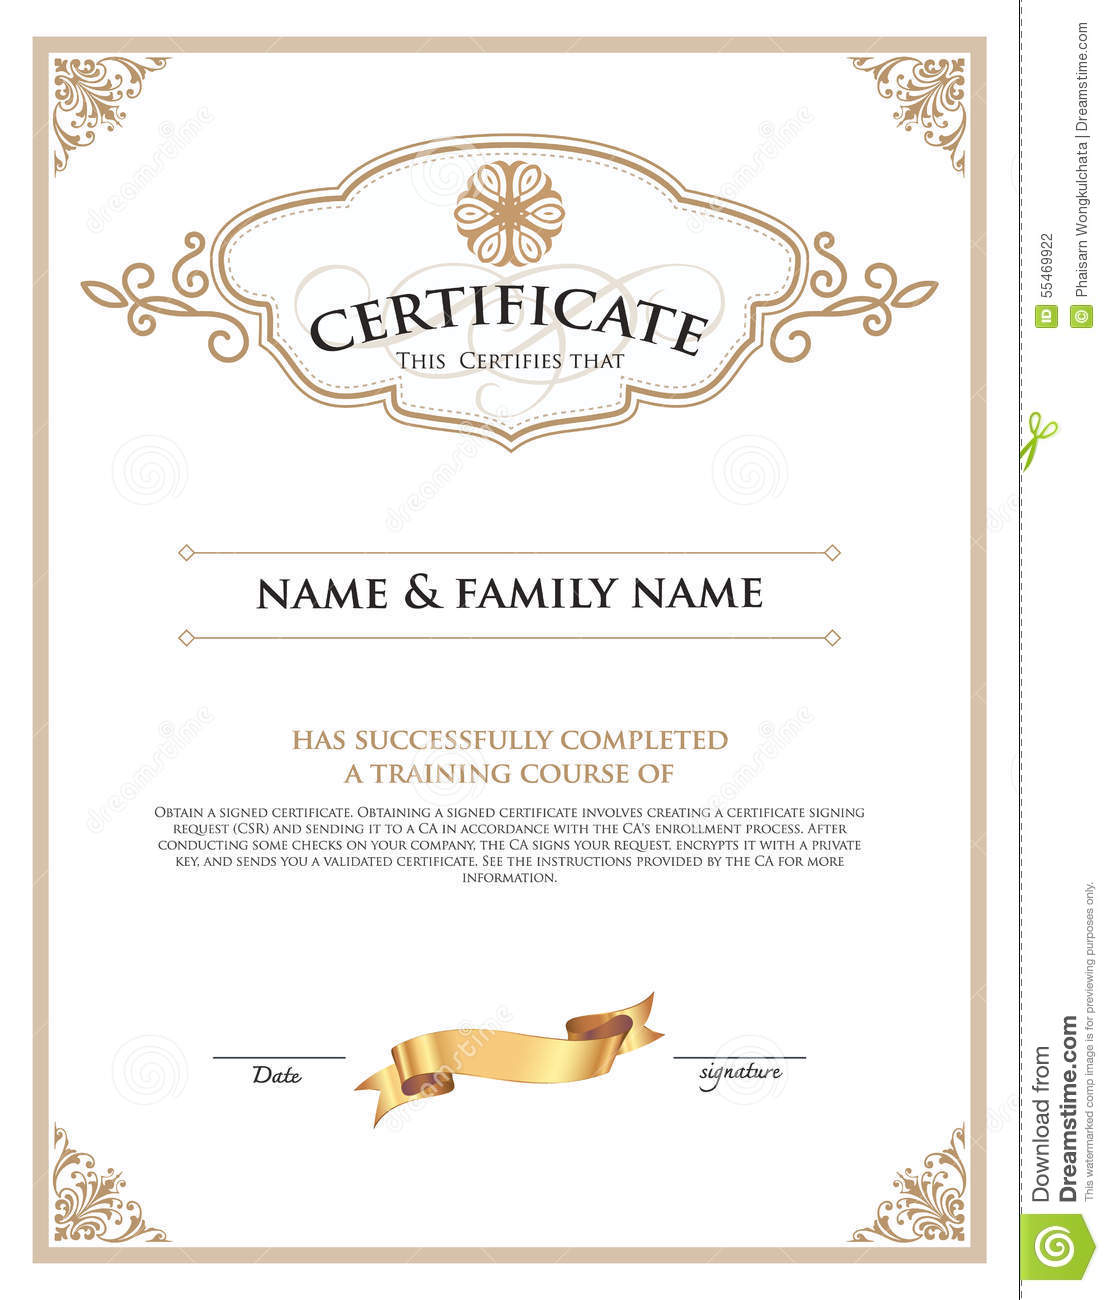 Certificate design template stock vector image 55469922 for Certificate design template